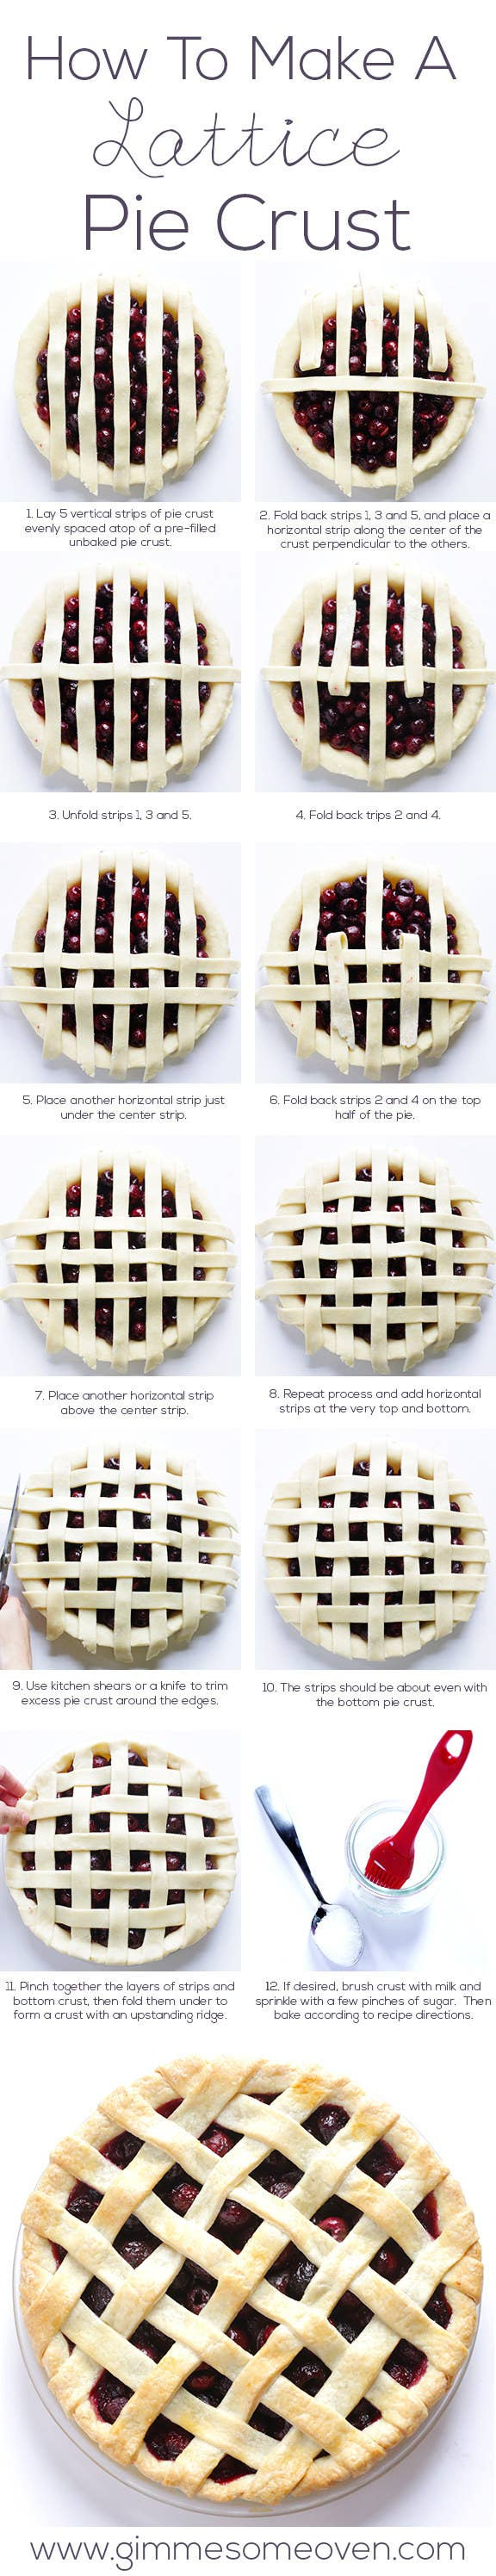 Look like a professional with this step-by-step lattice pie crust graphic.